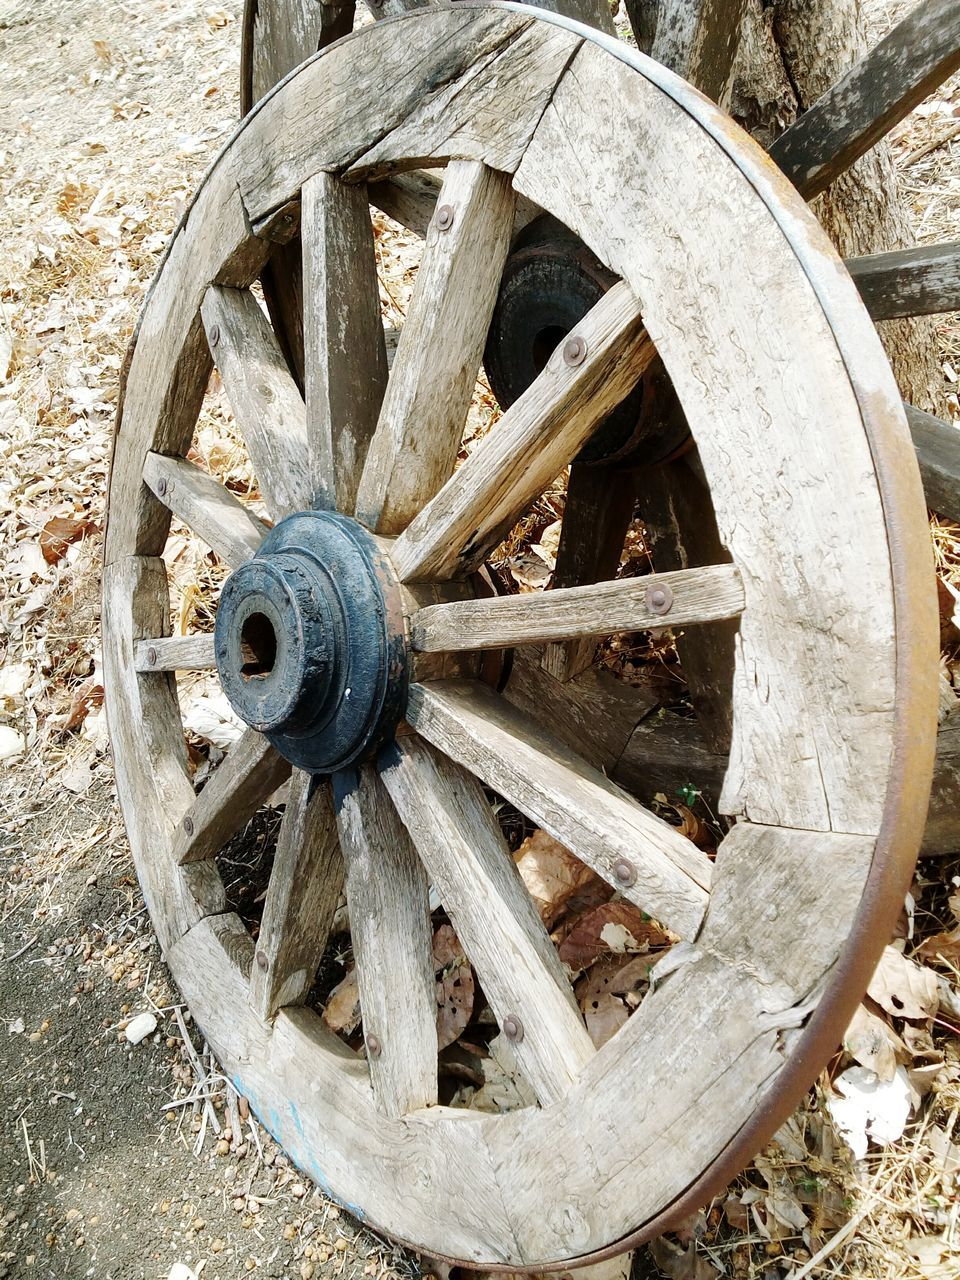 wheel, wagon wheel, circle, wood - material, day, damaged, no people, old-fashioned, outdoors, spoke, watermill, close-up